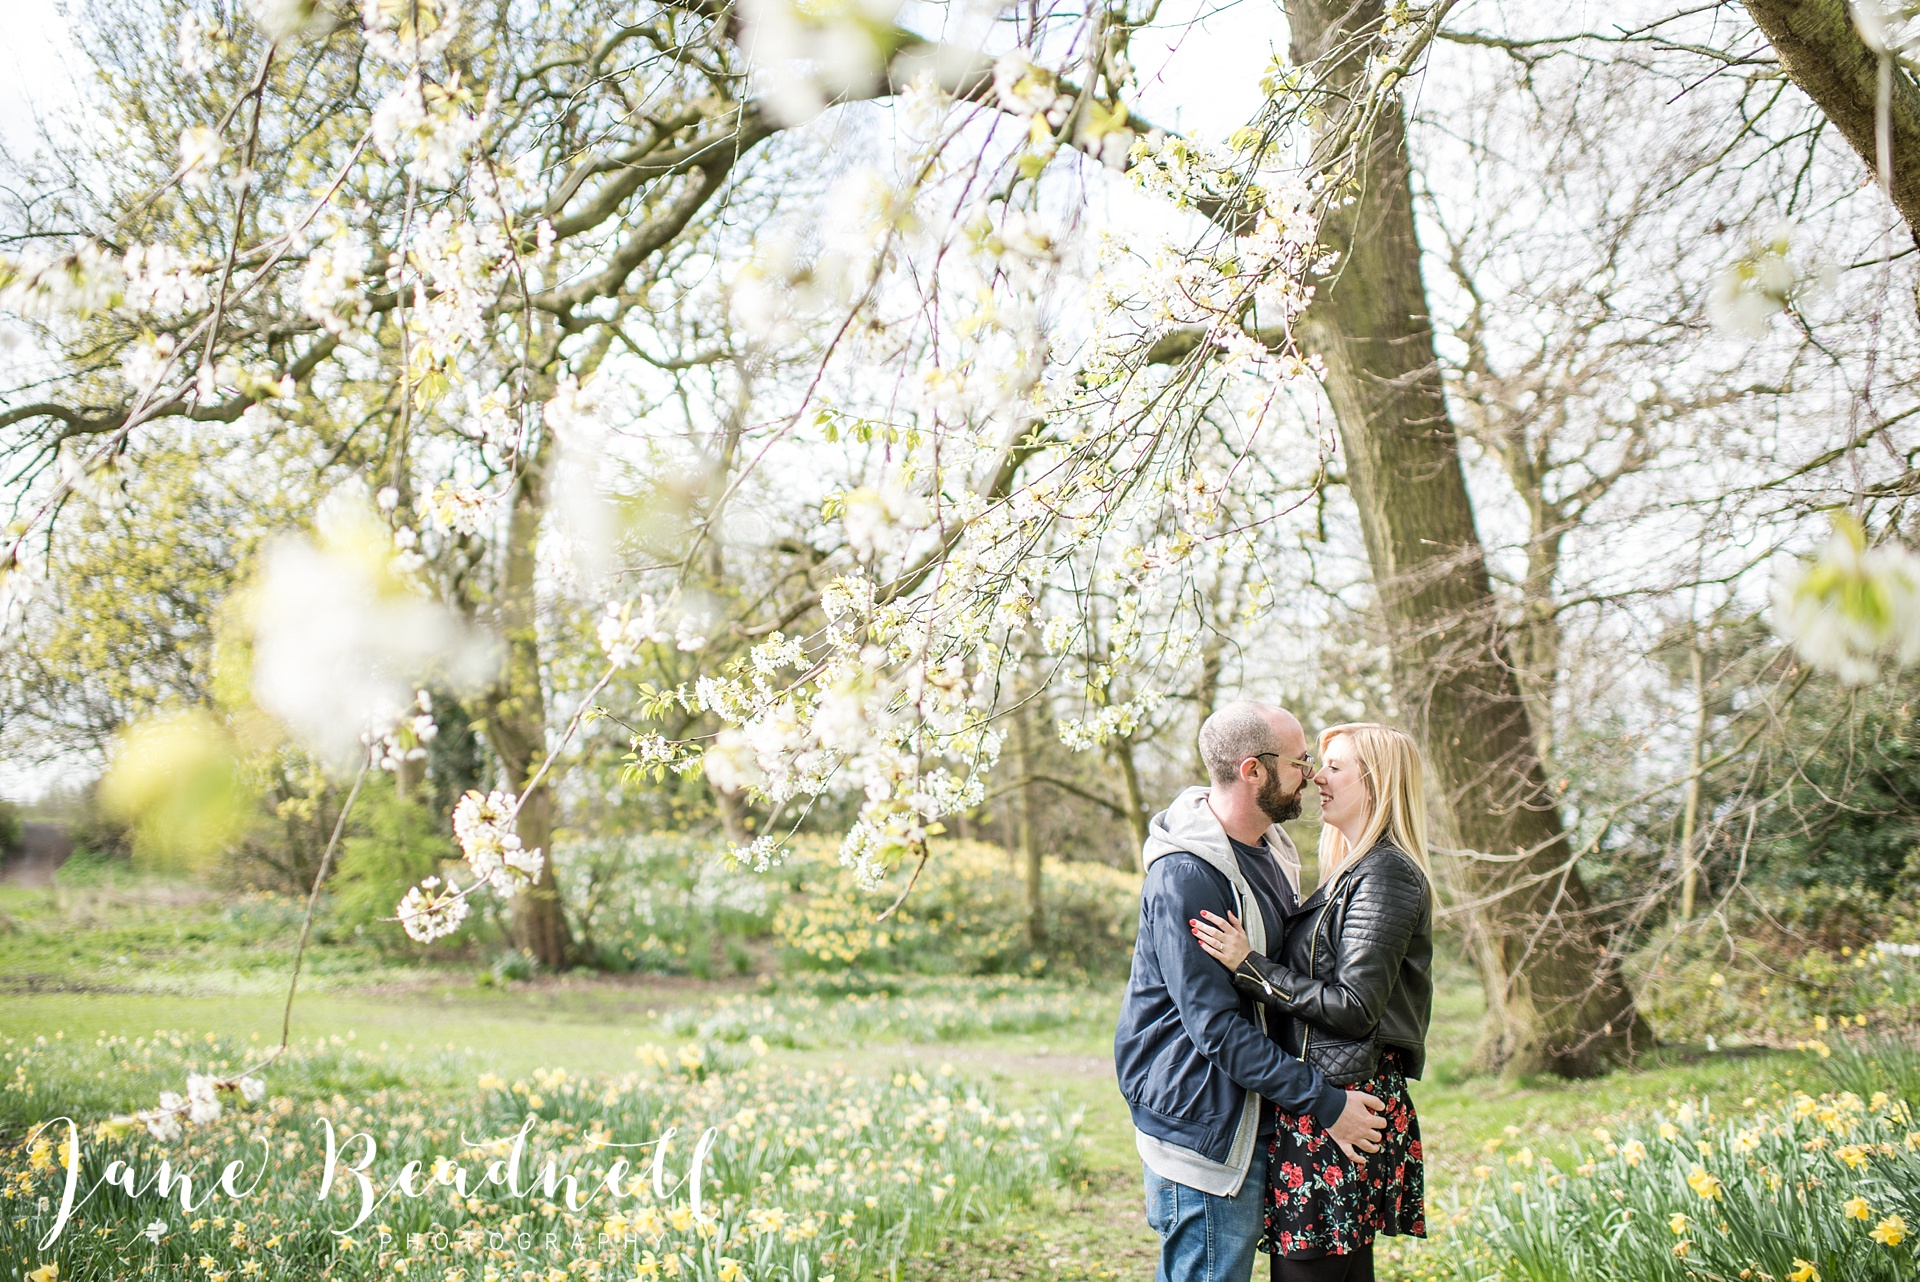 Temple Newsam engagement photography by Jane Beadnell Wedding Photography_0003